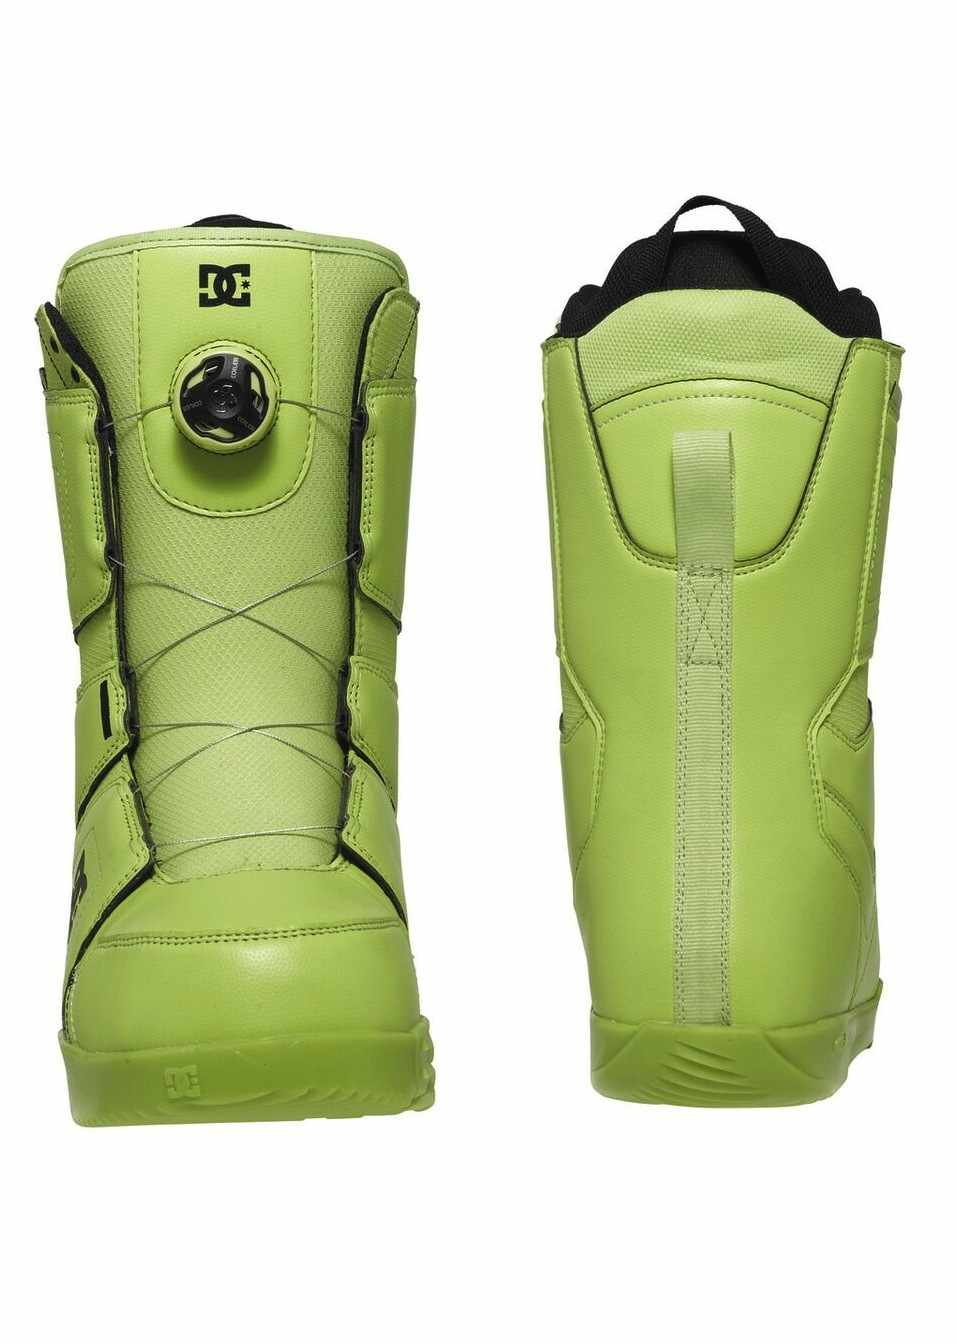 DC SHOES BOOTS SNOWBOARD SCOUT LIME - LM BOARD STORE